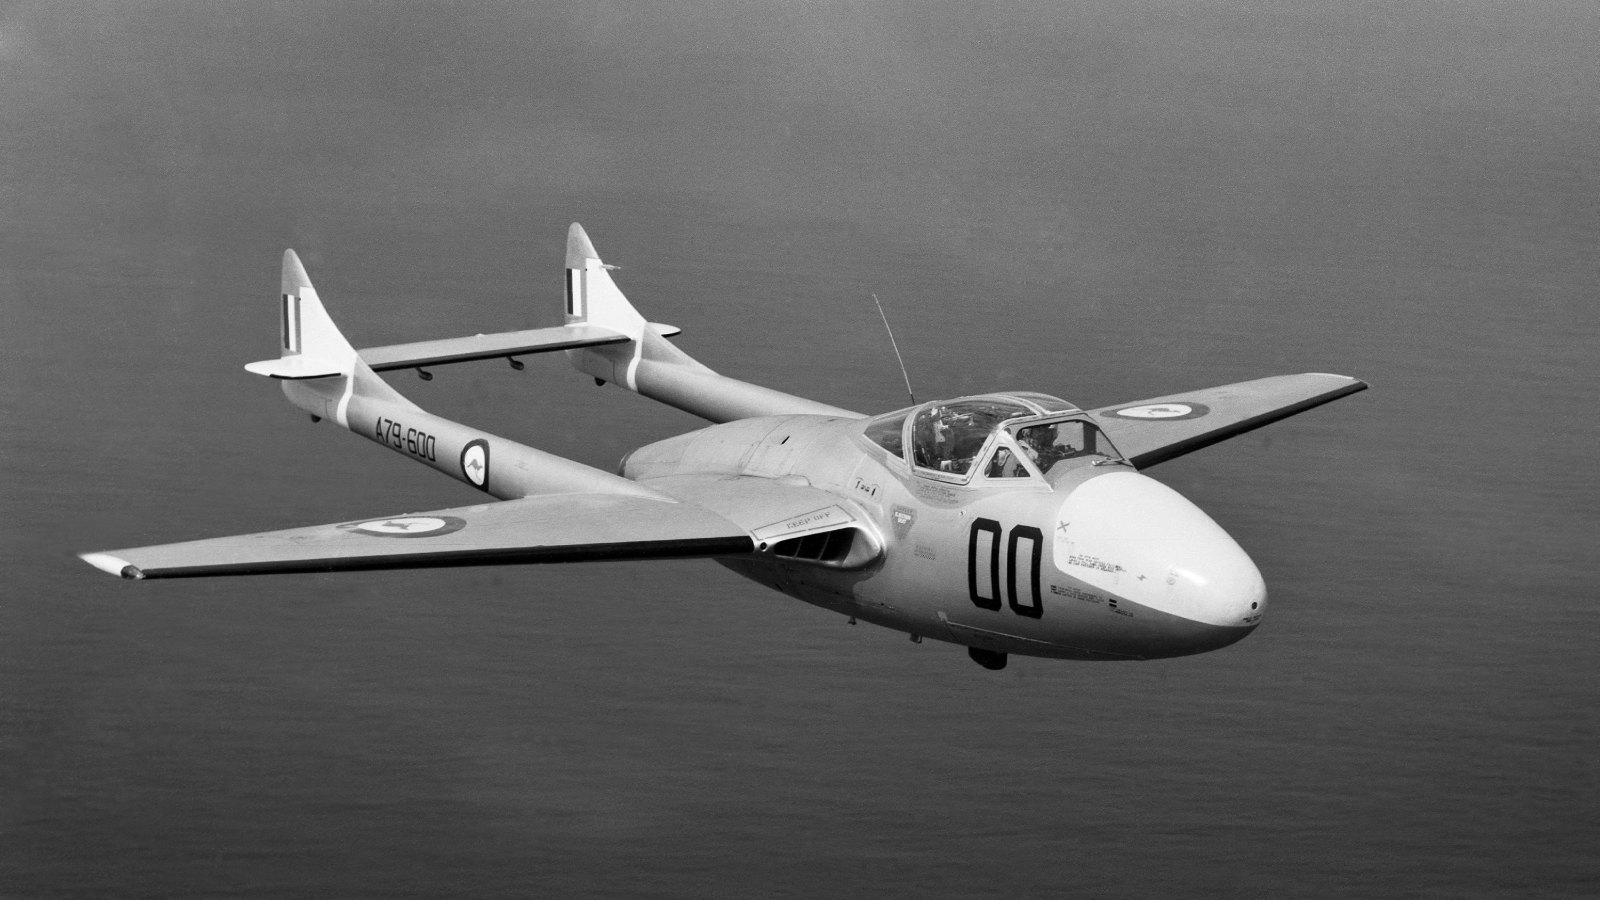 A79-600 DH Vampire (Aust) of CFS flying over the sea. AFIR: 000-140-393